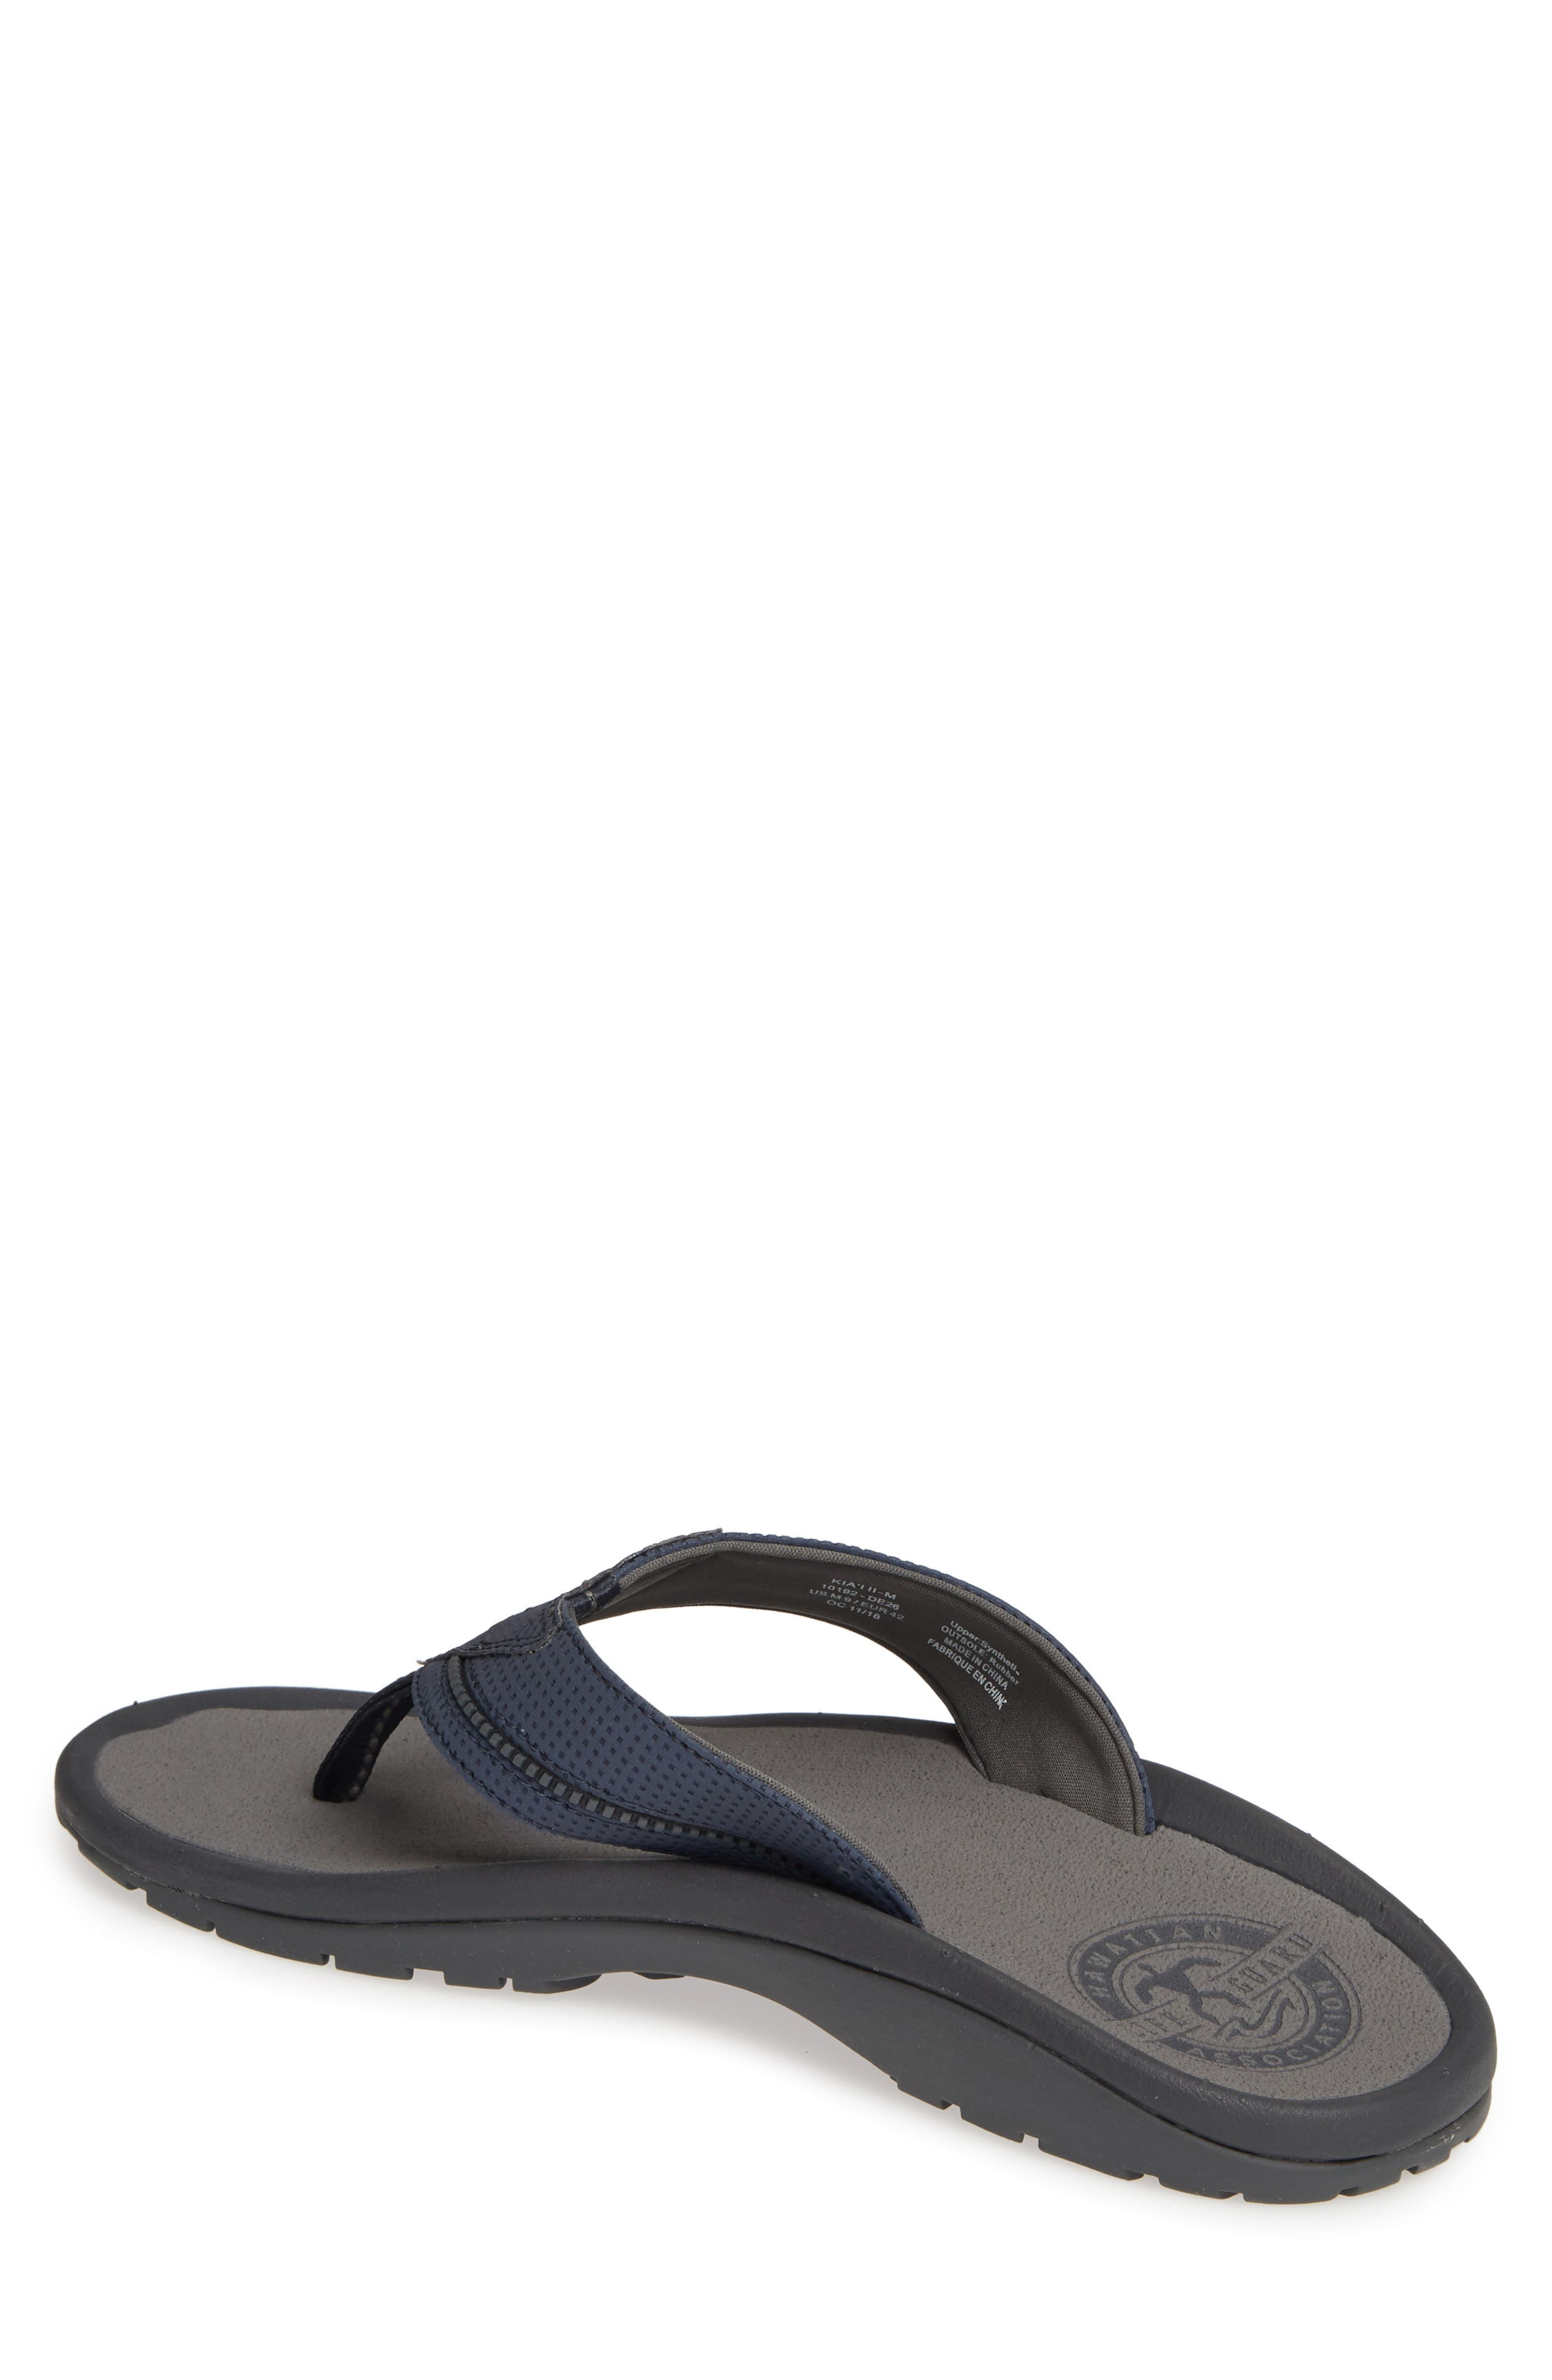 OLUKAI, 'Kia'i II' Flip Flop, Alternate thumbnail 2, color, TRENCH BLUE/ CHARCOAL